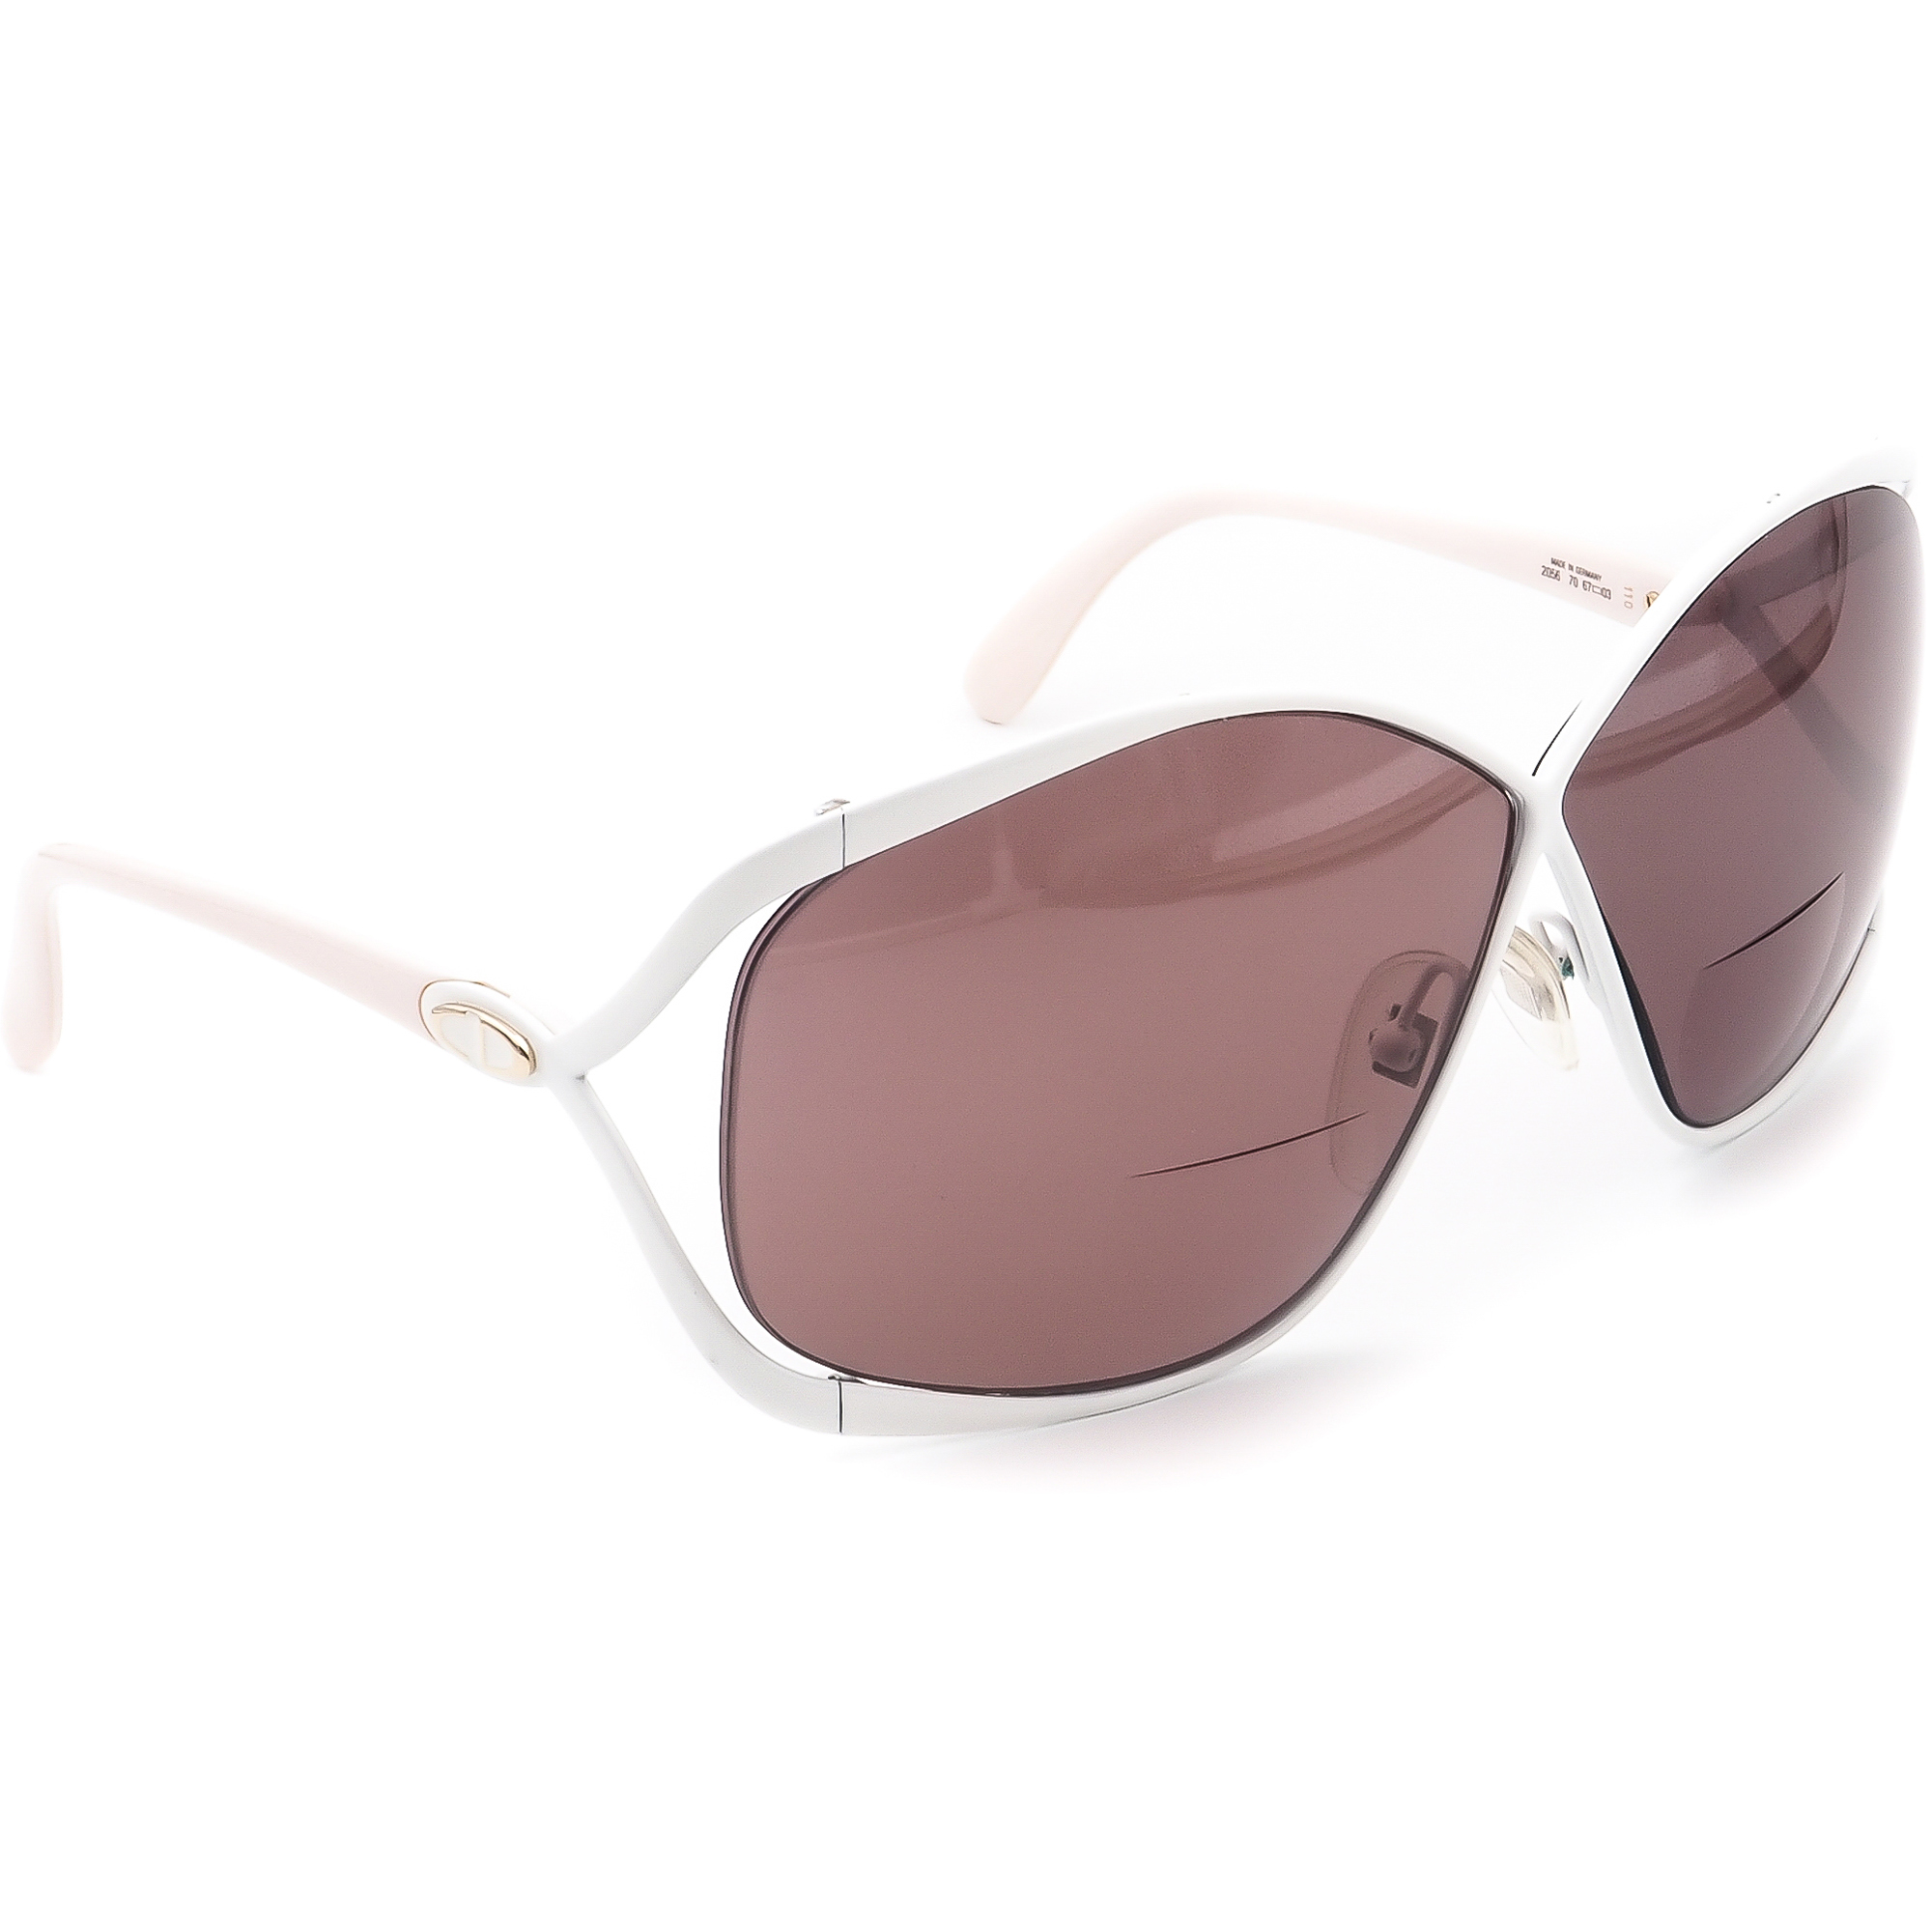 Christian Dior 2056 70  Sunglasses Frame Only